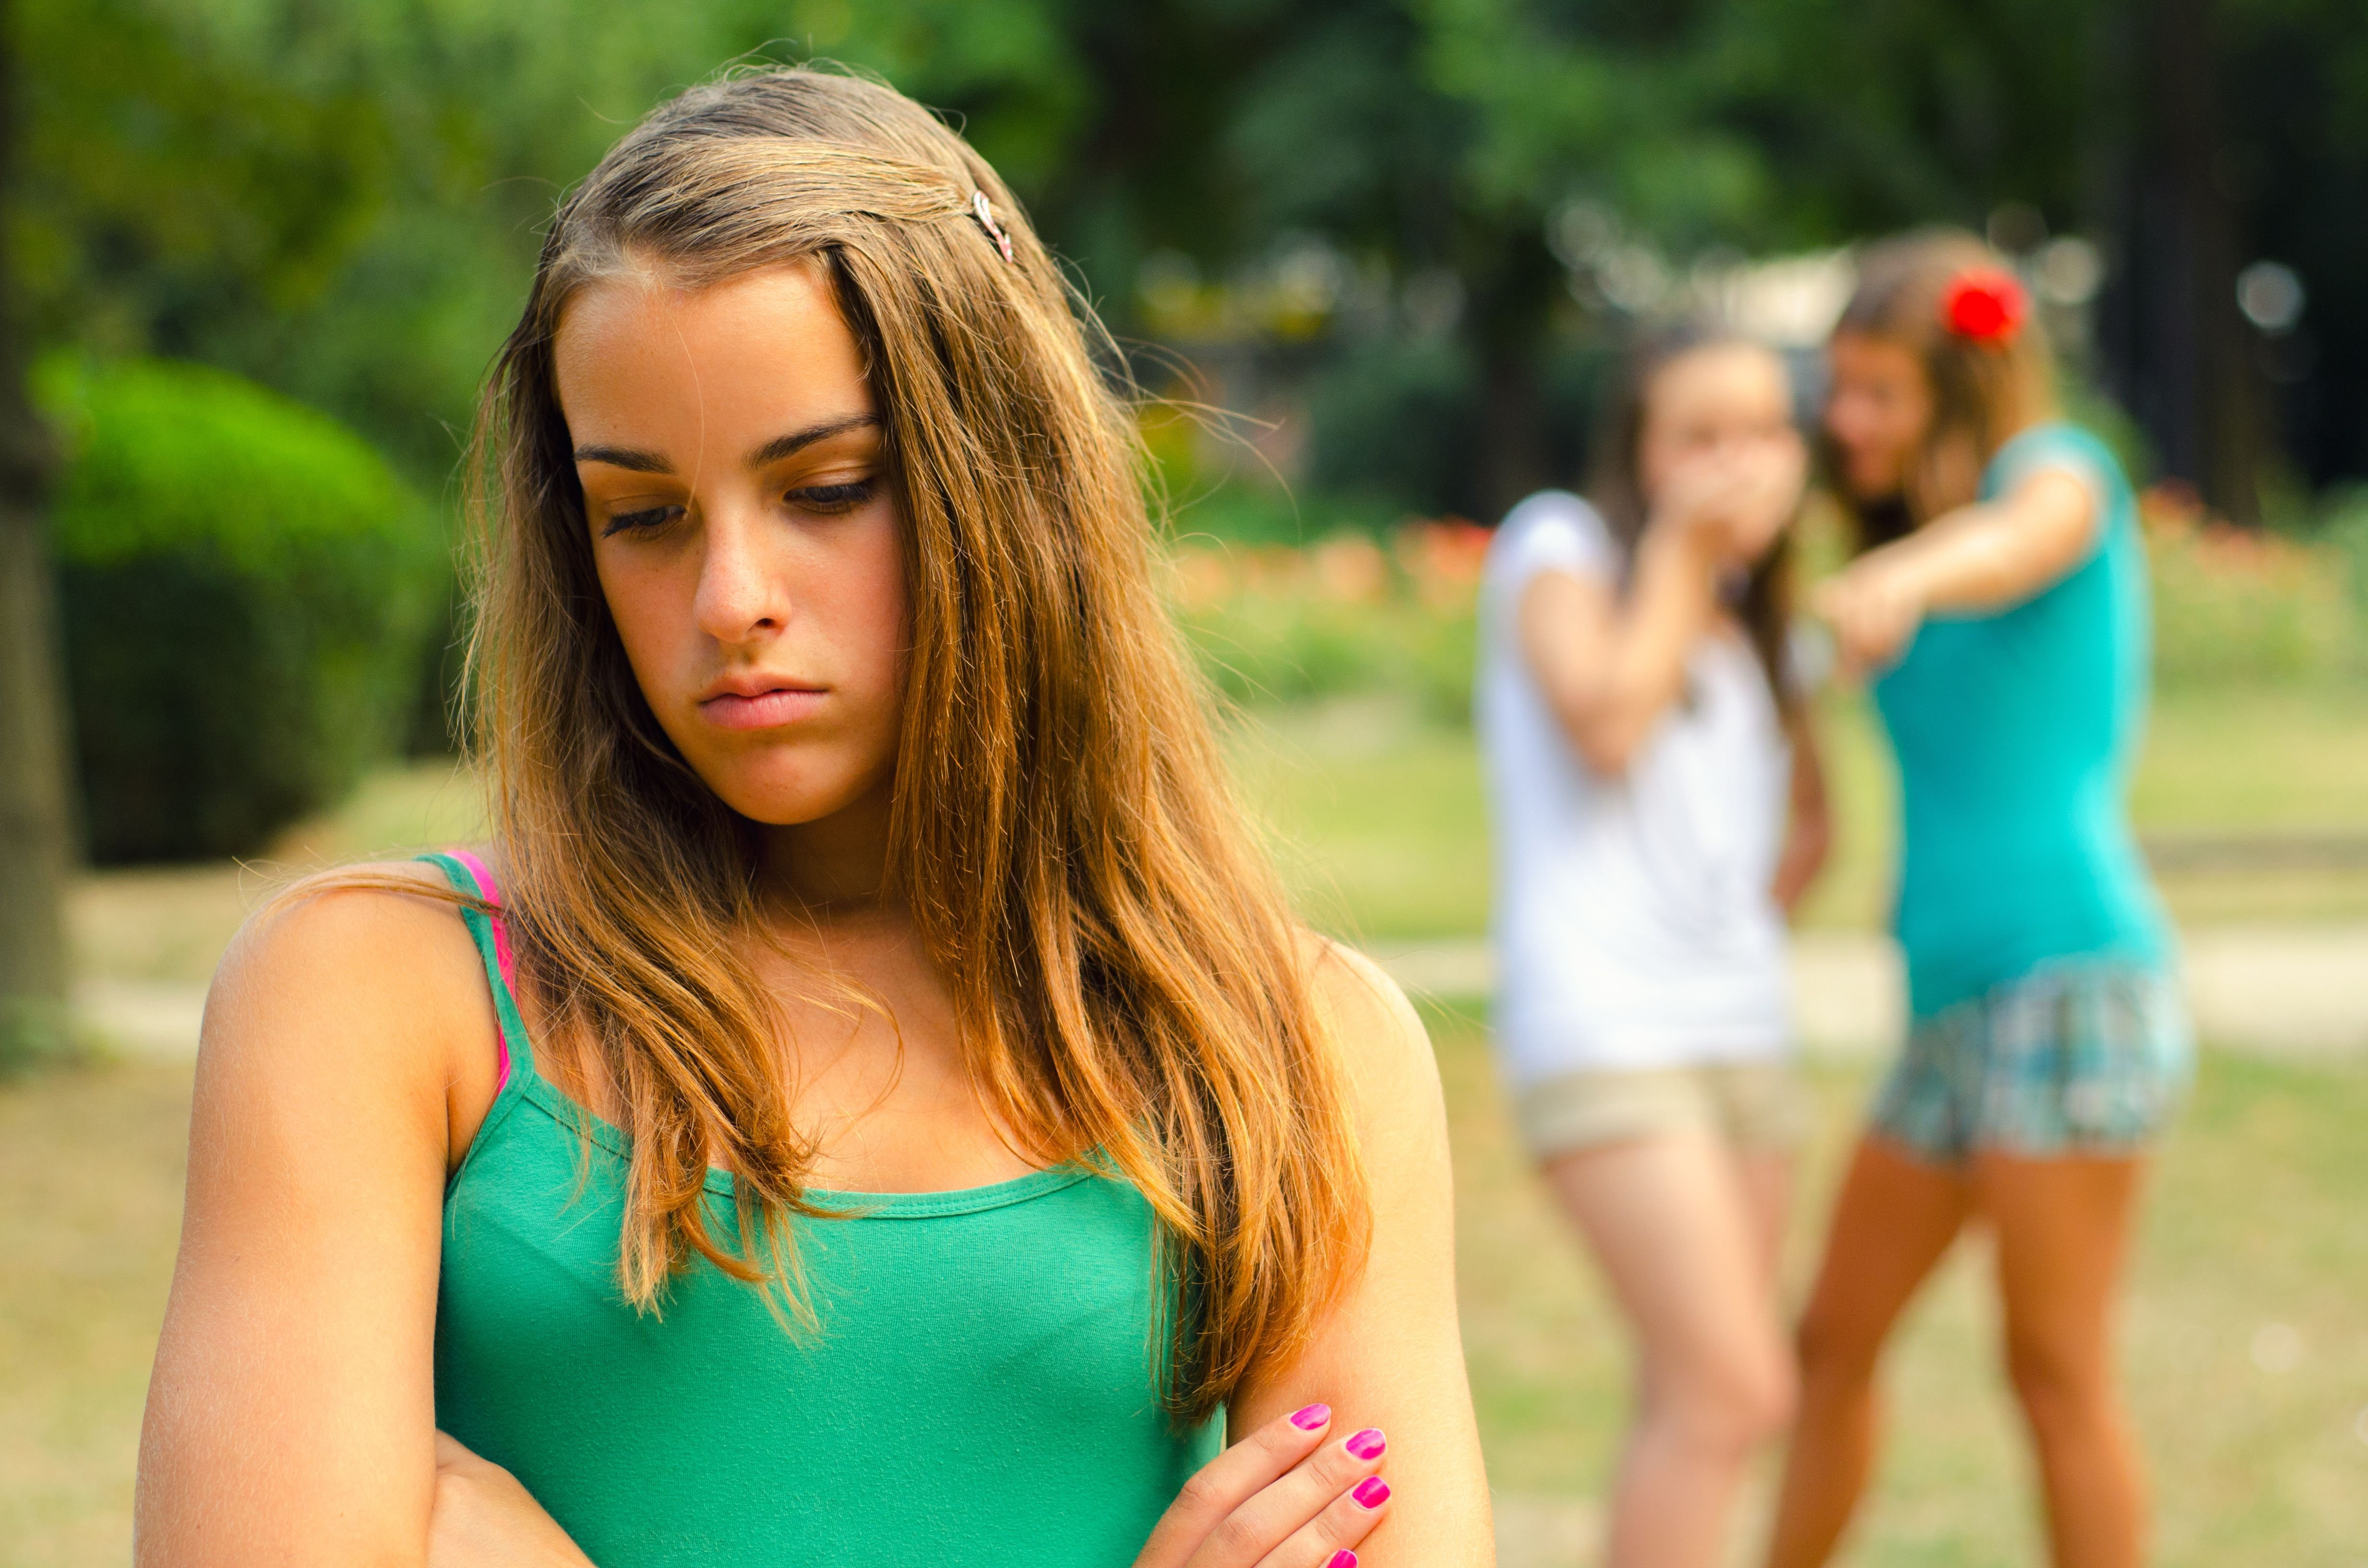 A teen looks sad while her peers tease her.   Source: Shutterstock